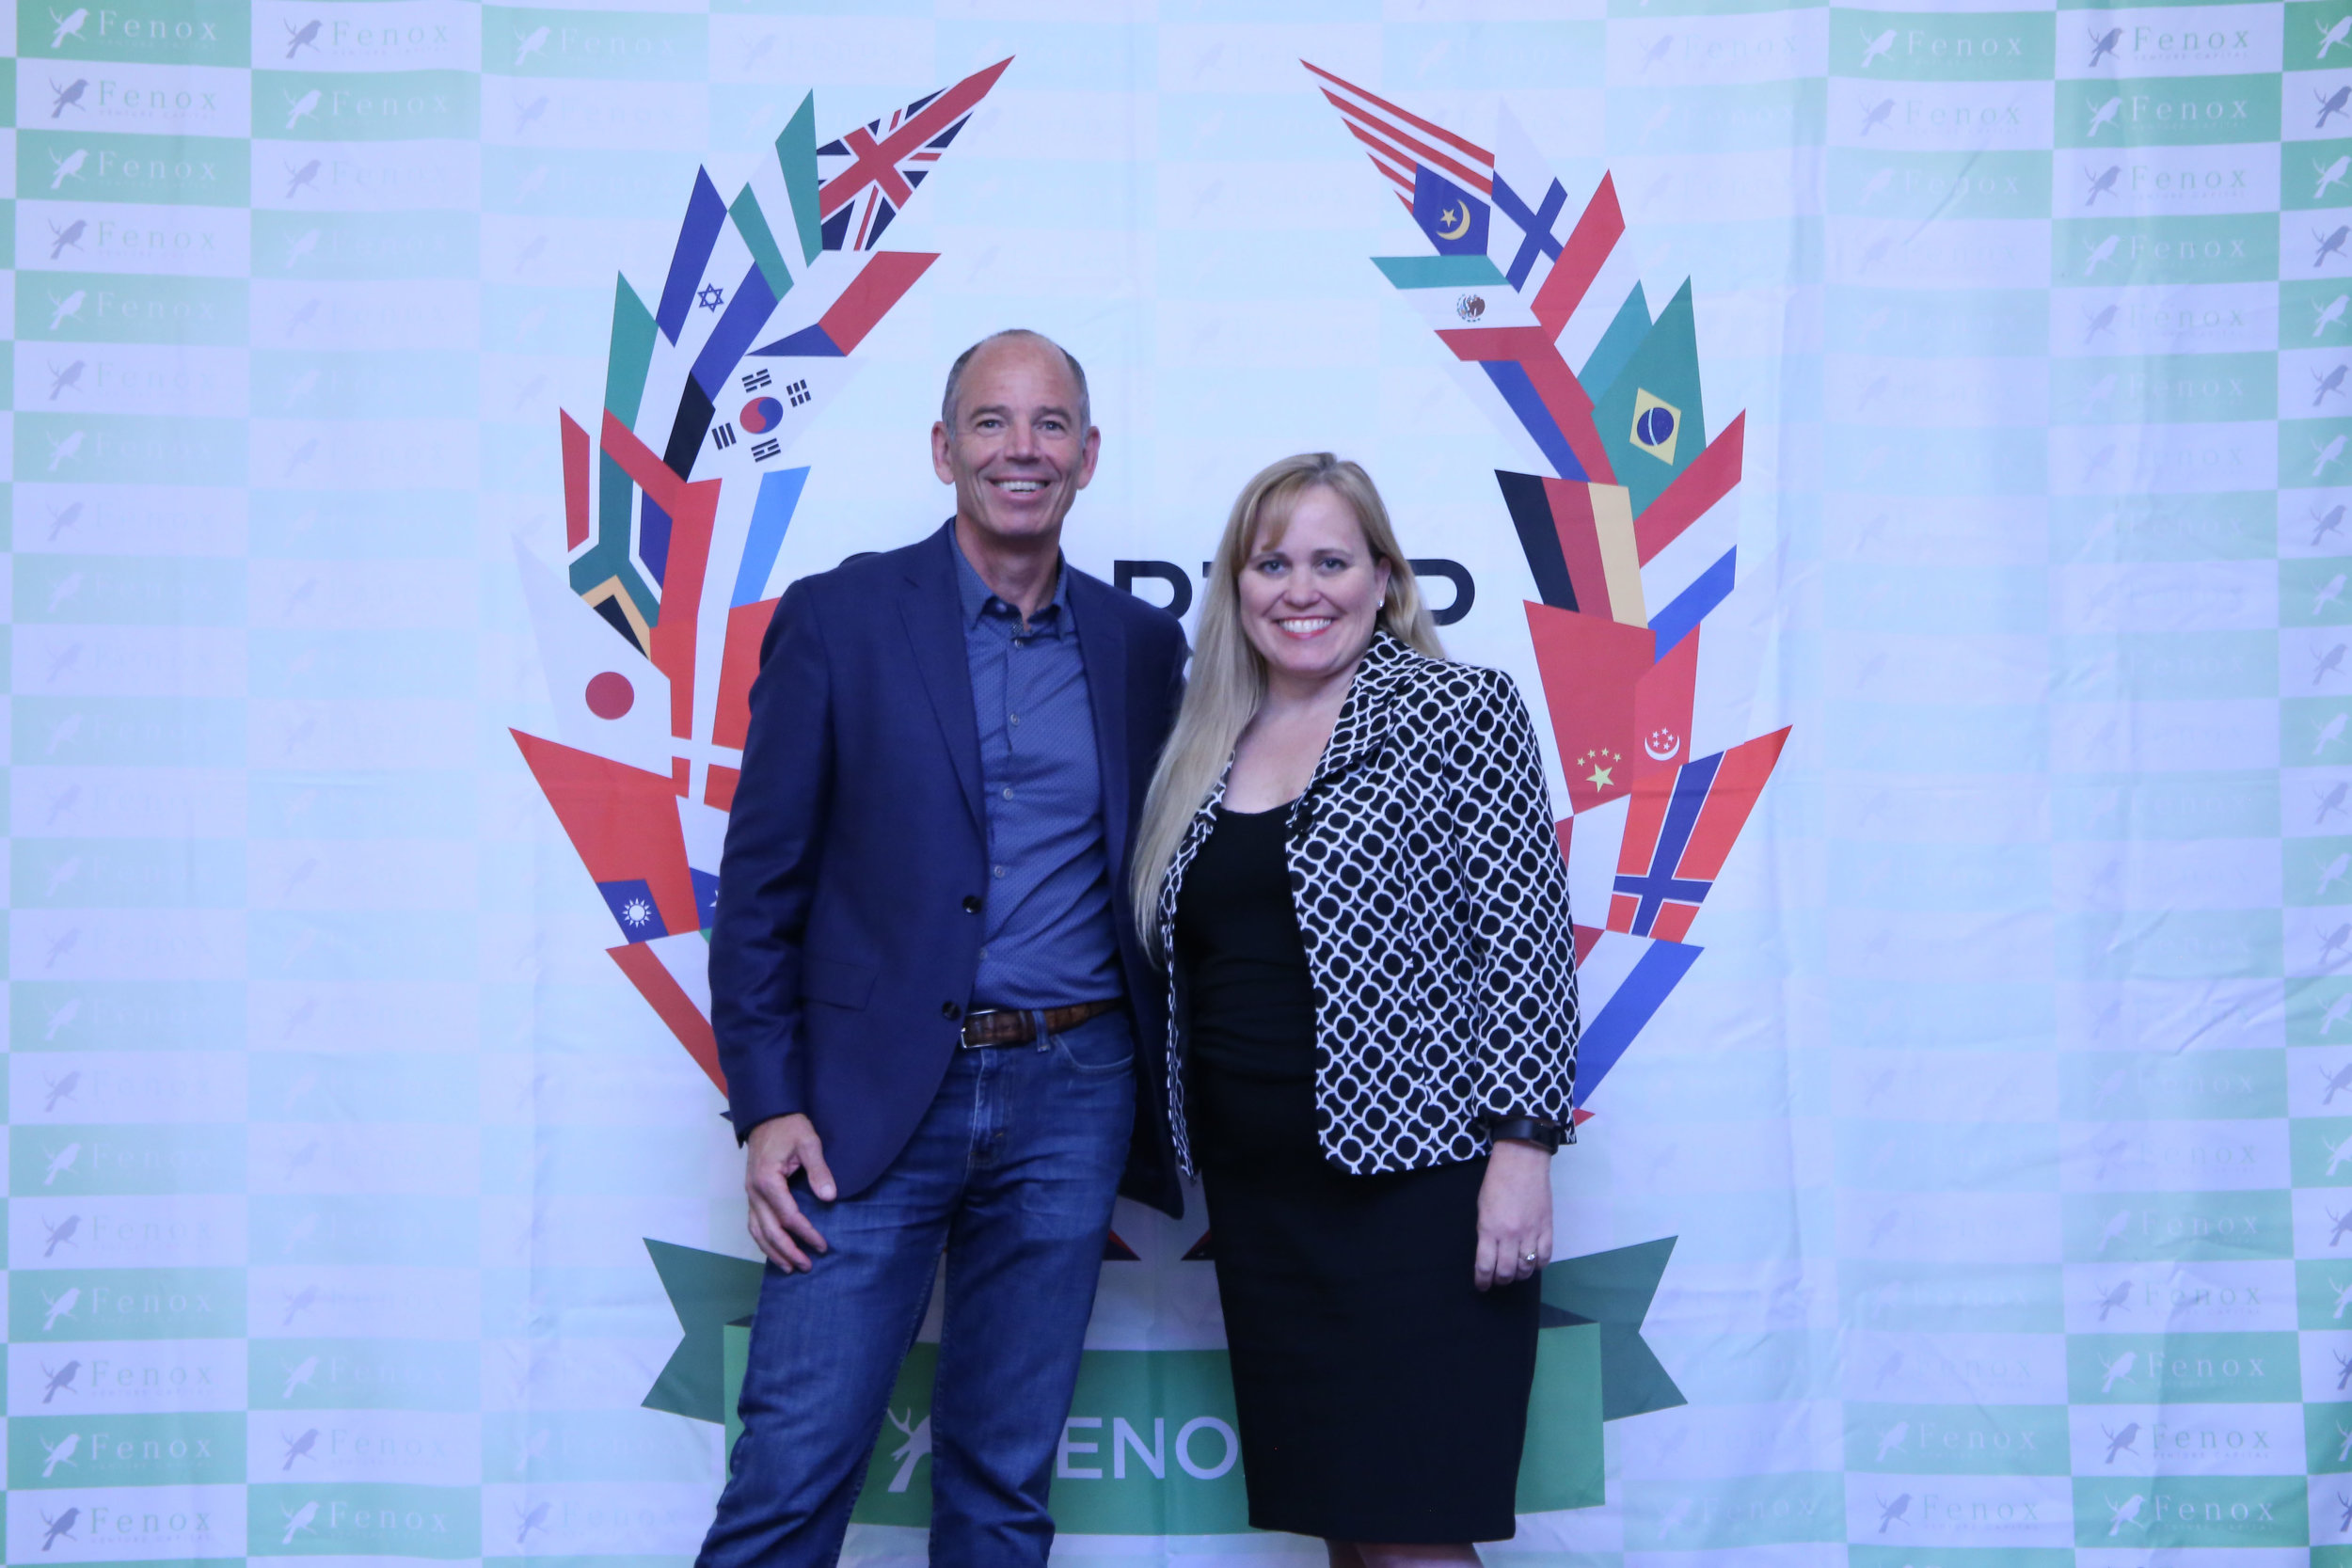 Charlotte Danielsson at a Meet & Greet with Marc Randolph, Cofounder of Netflix